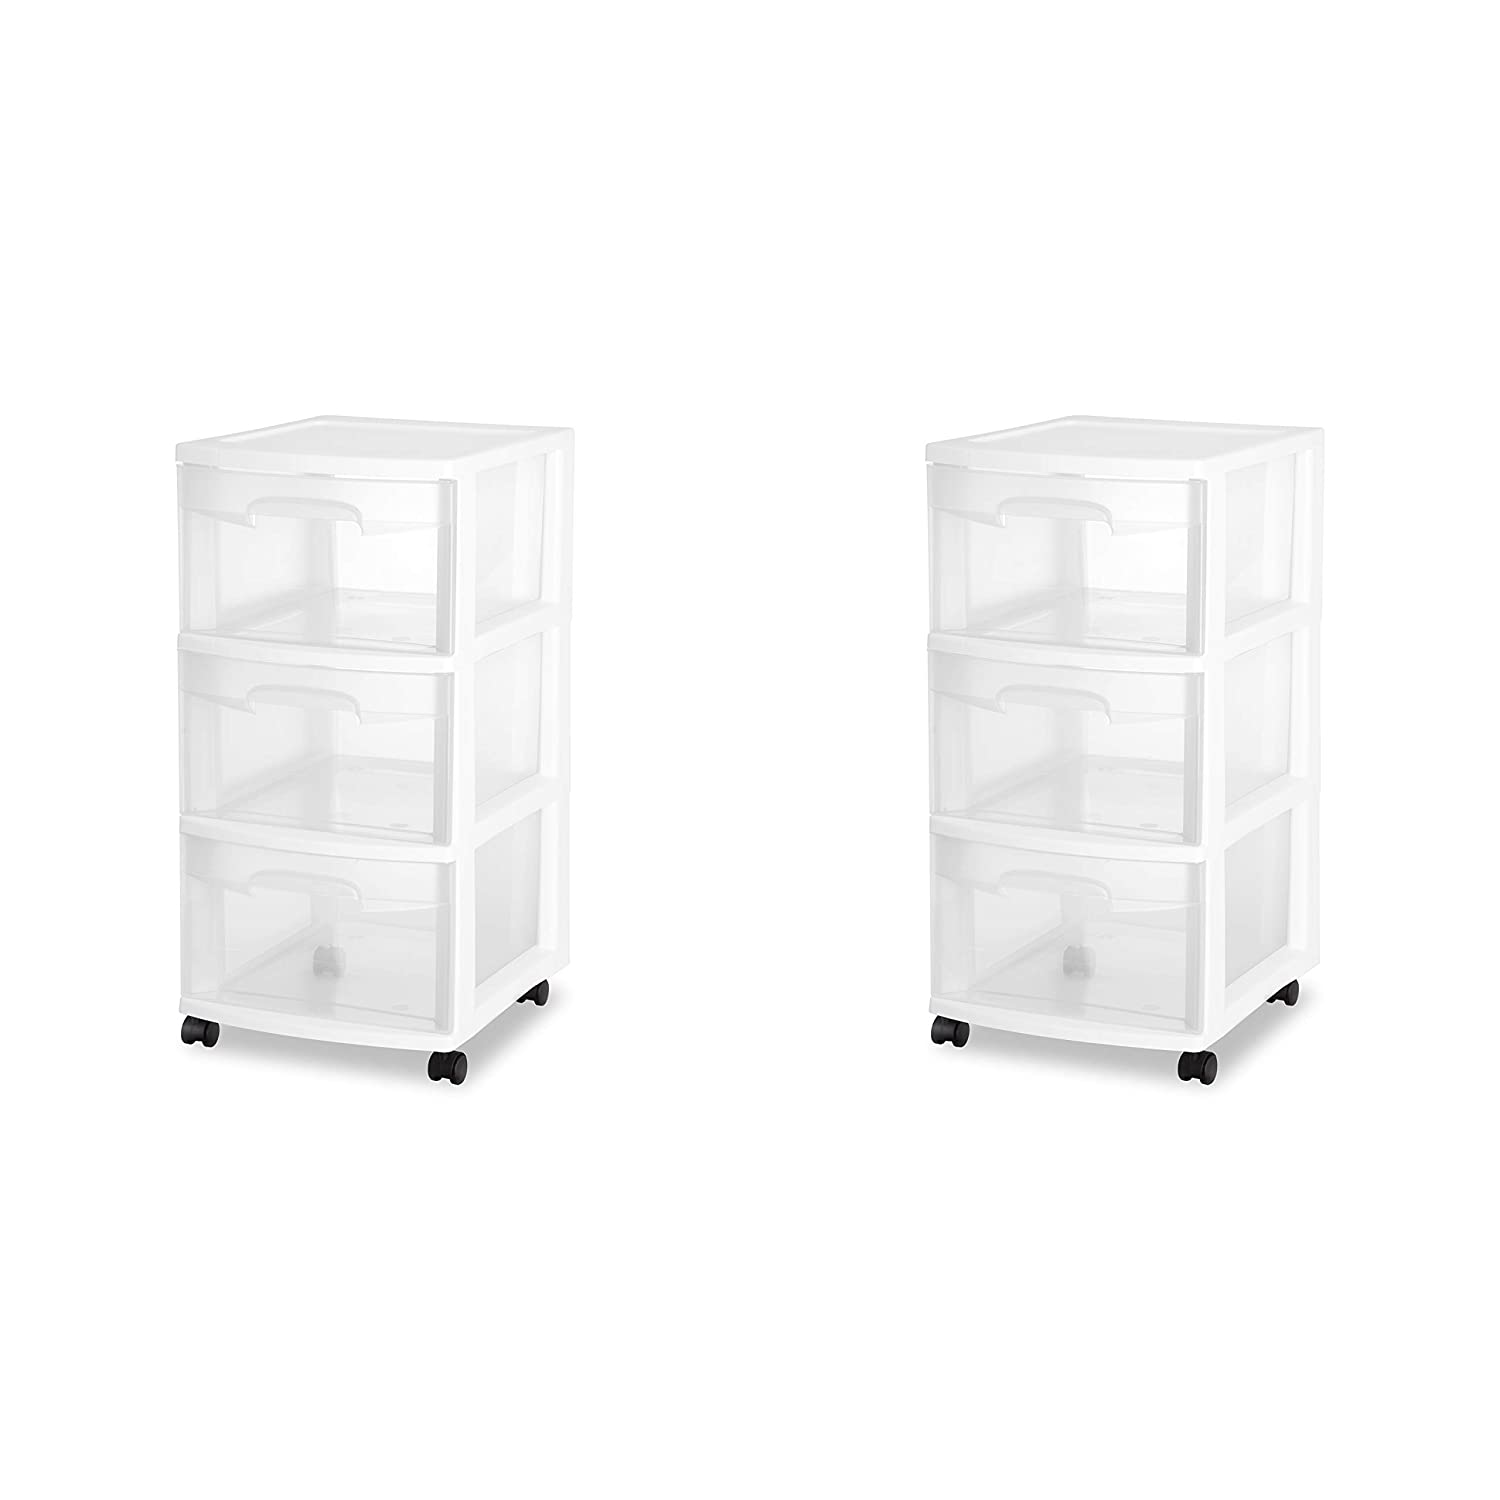 Sterilite 28308002 3 Drawer Cart, White Frame with Clear Drawers and Black Casters, 2-Pack